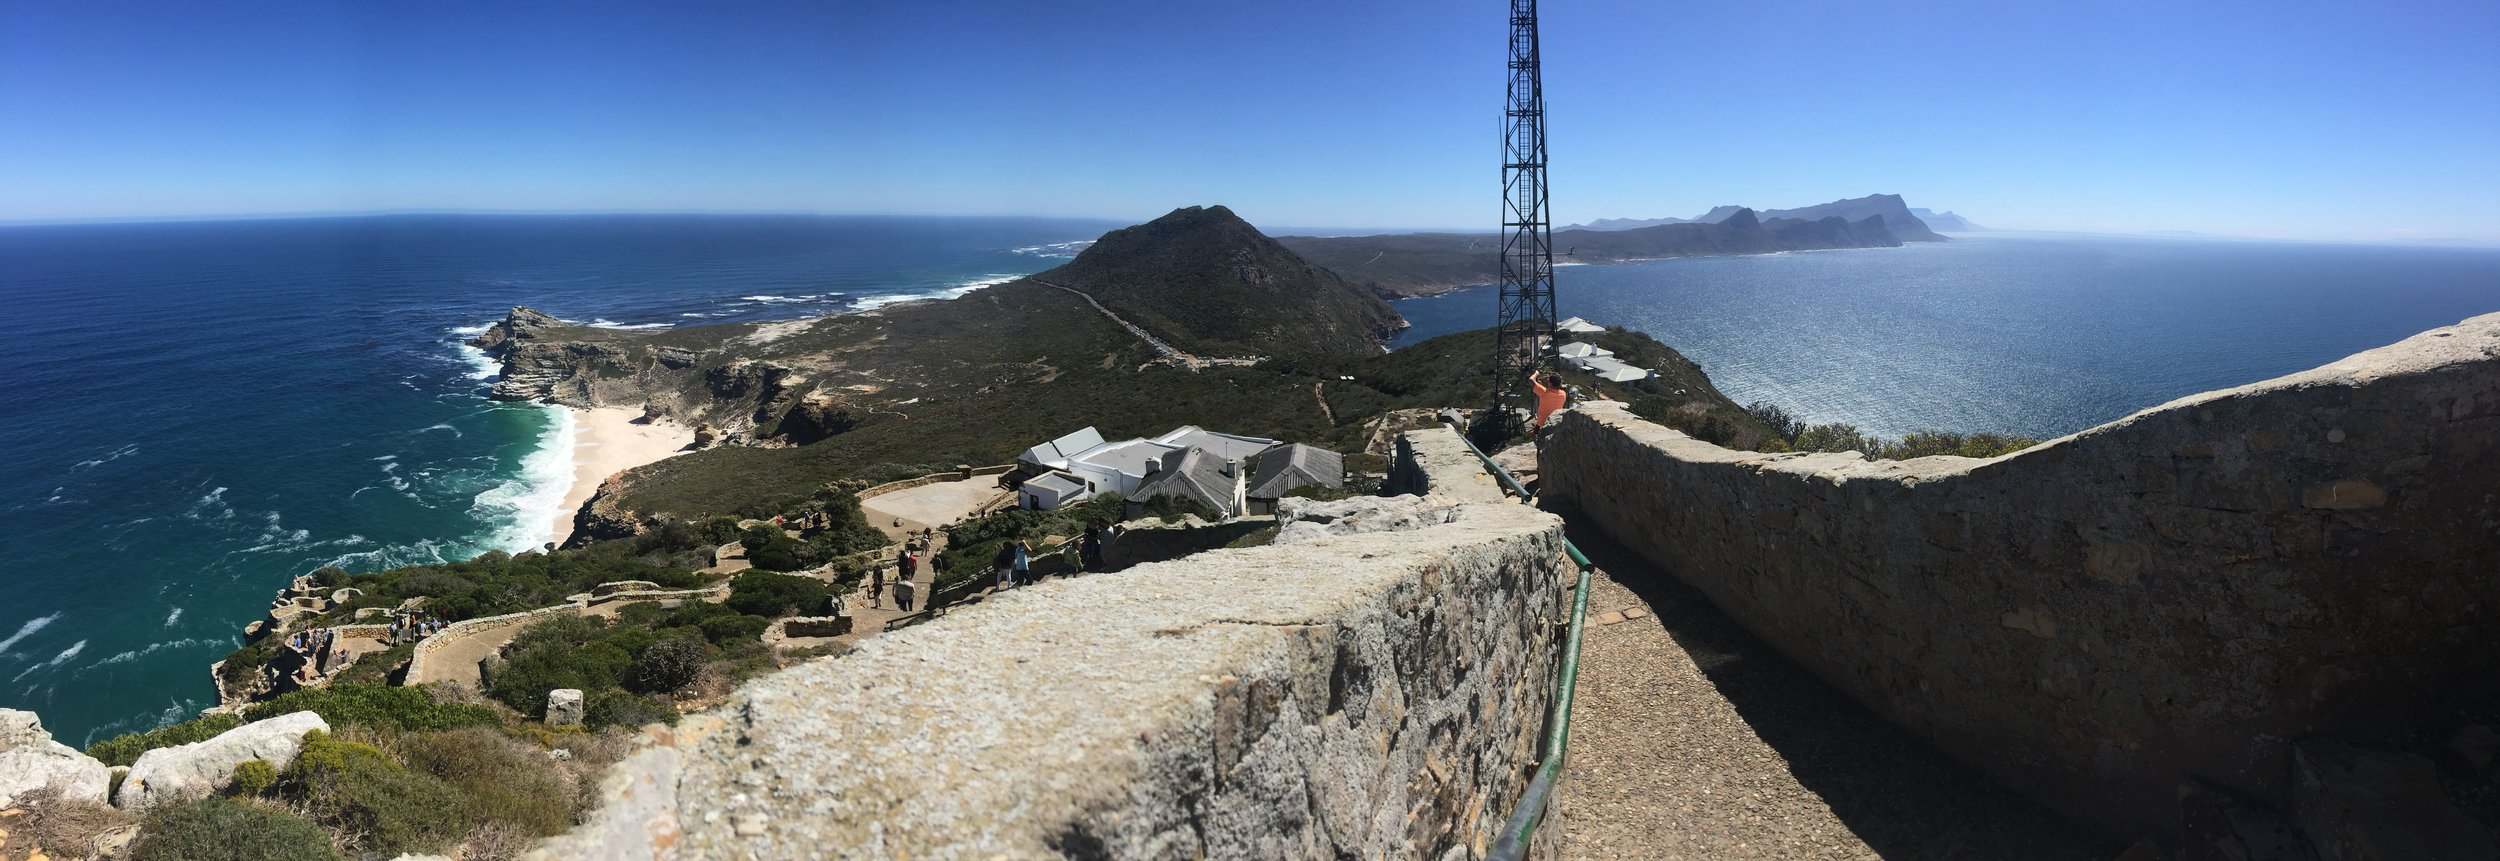 Looking back at the African continent from the tip of the Cape of Good Hope.